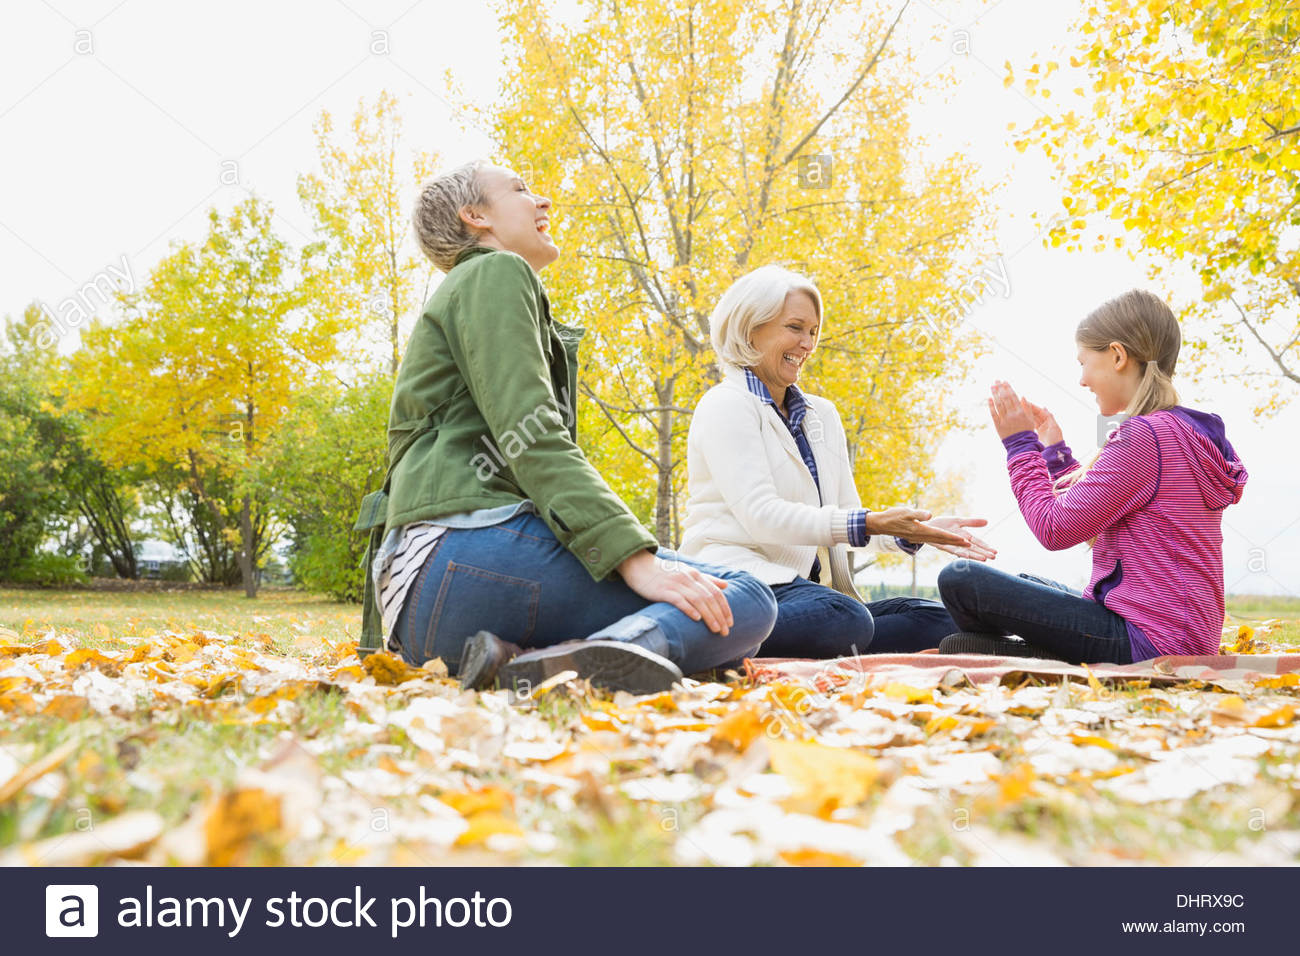 Three generation family playing clapping game in park - Stock Image